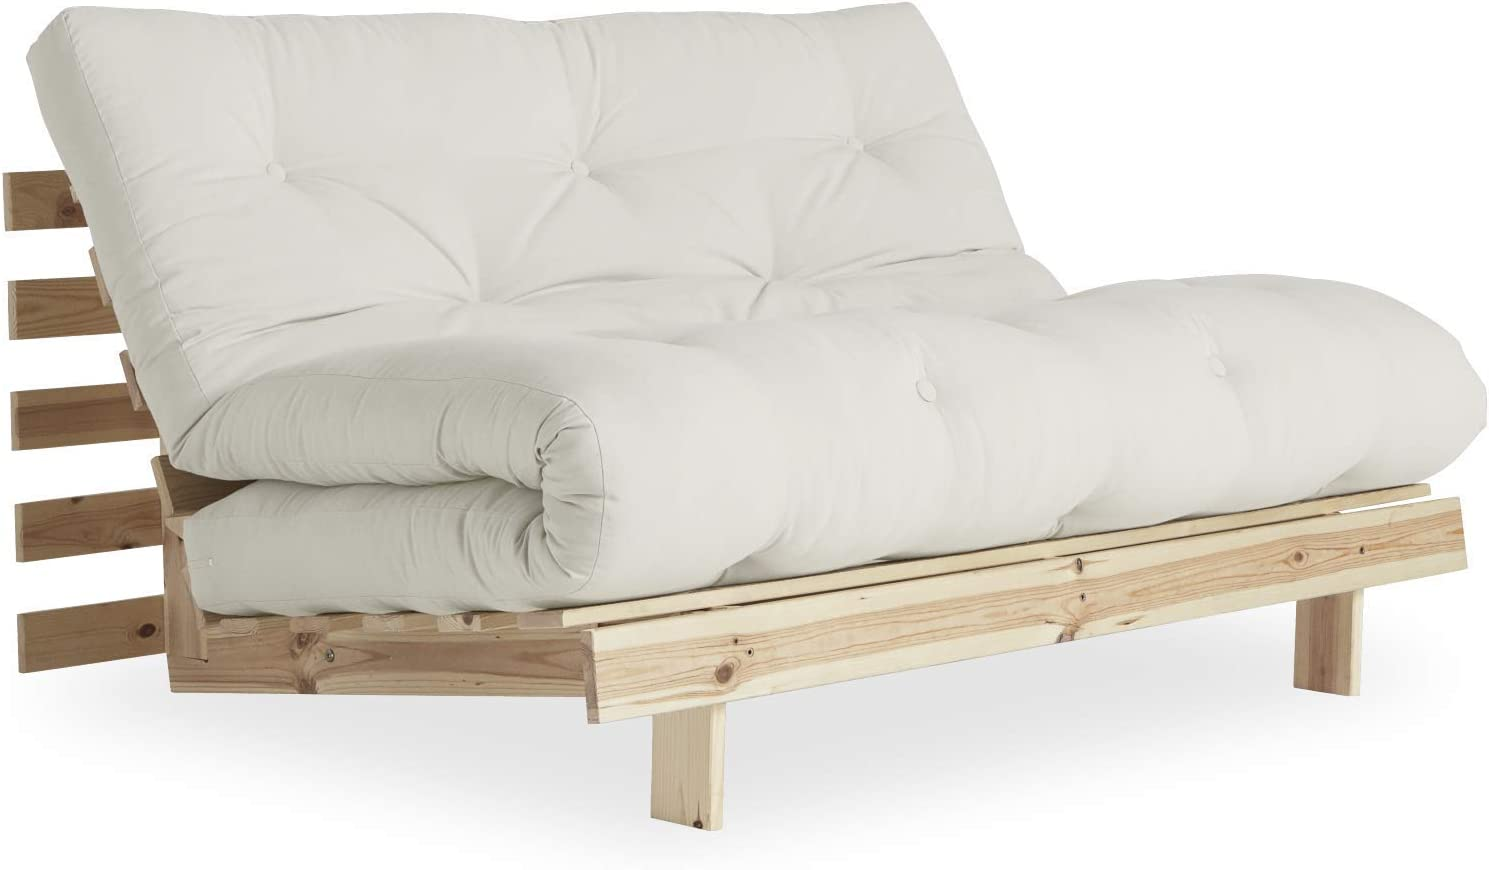 Roots Futon Sofa Bed by Karup Design - Easily converts into Day Bed   Natural Mattress Color